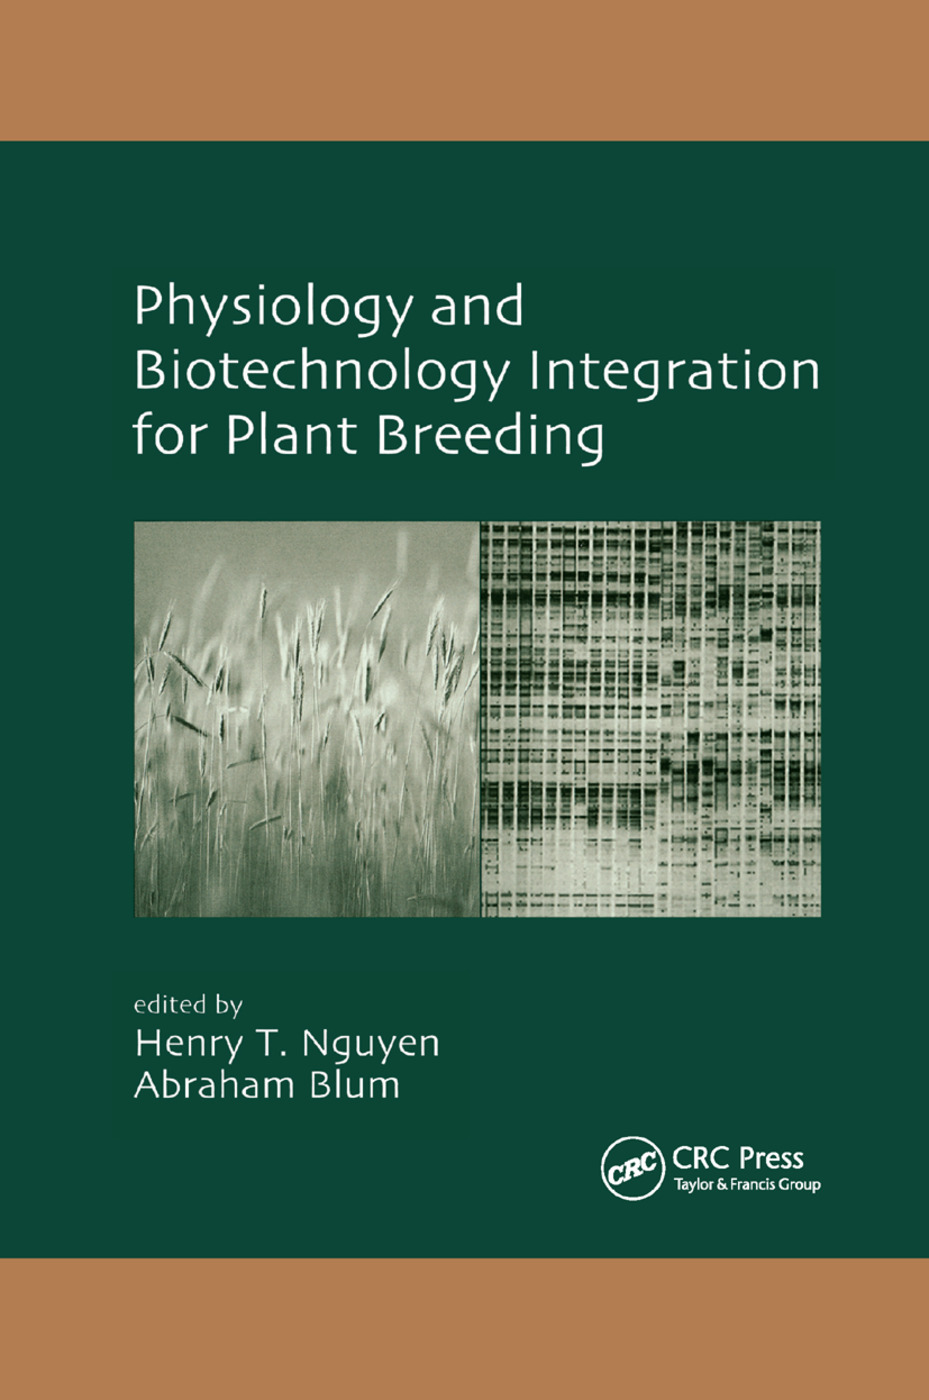 Physiology and Biotechnology Integration for Plant Breeding: 1st Edition (Paperback) book cover